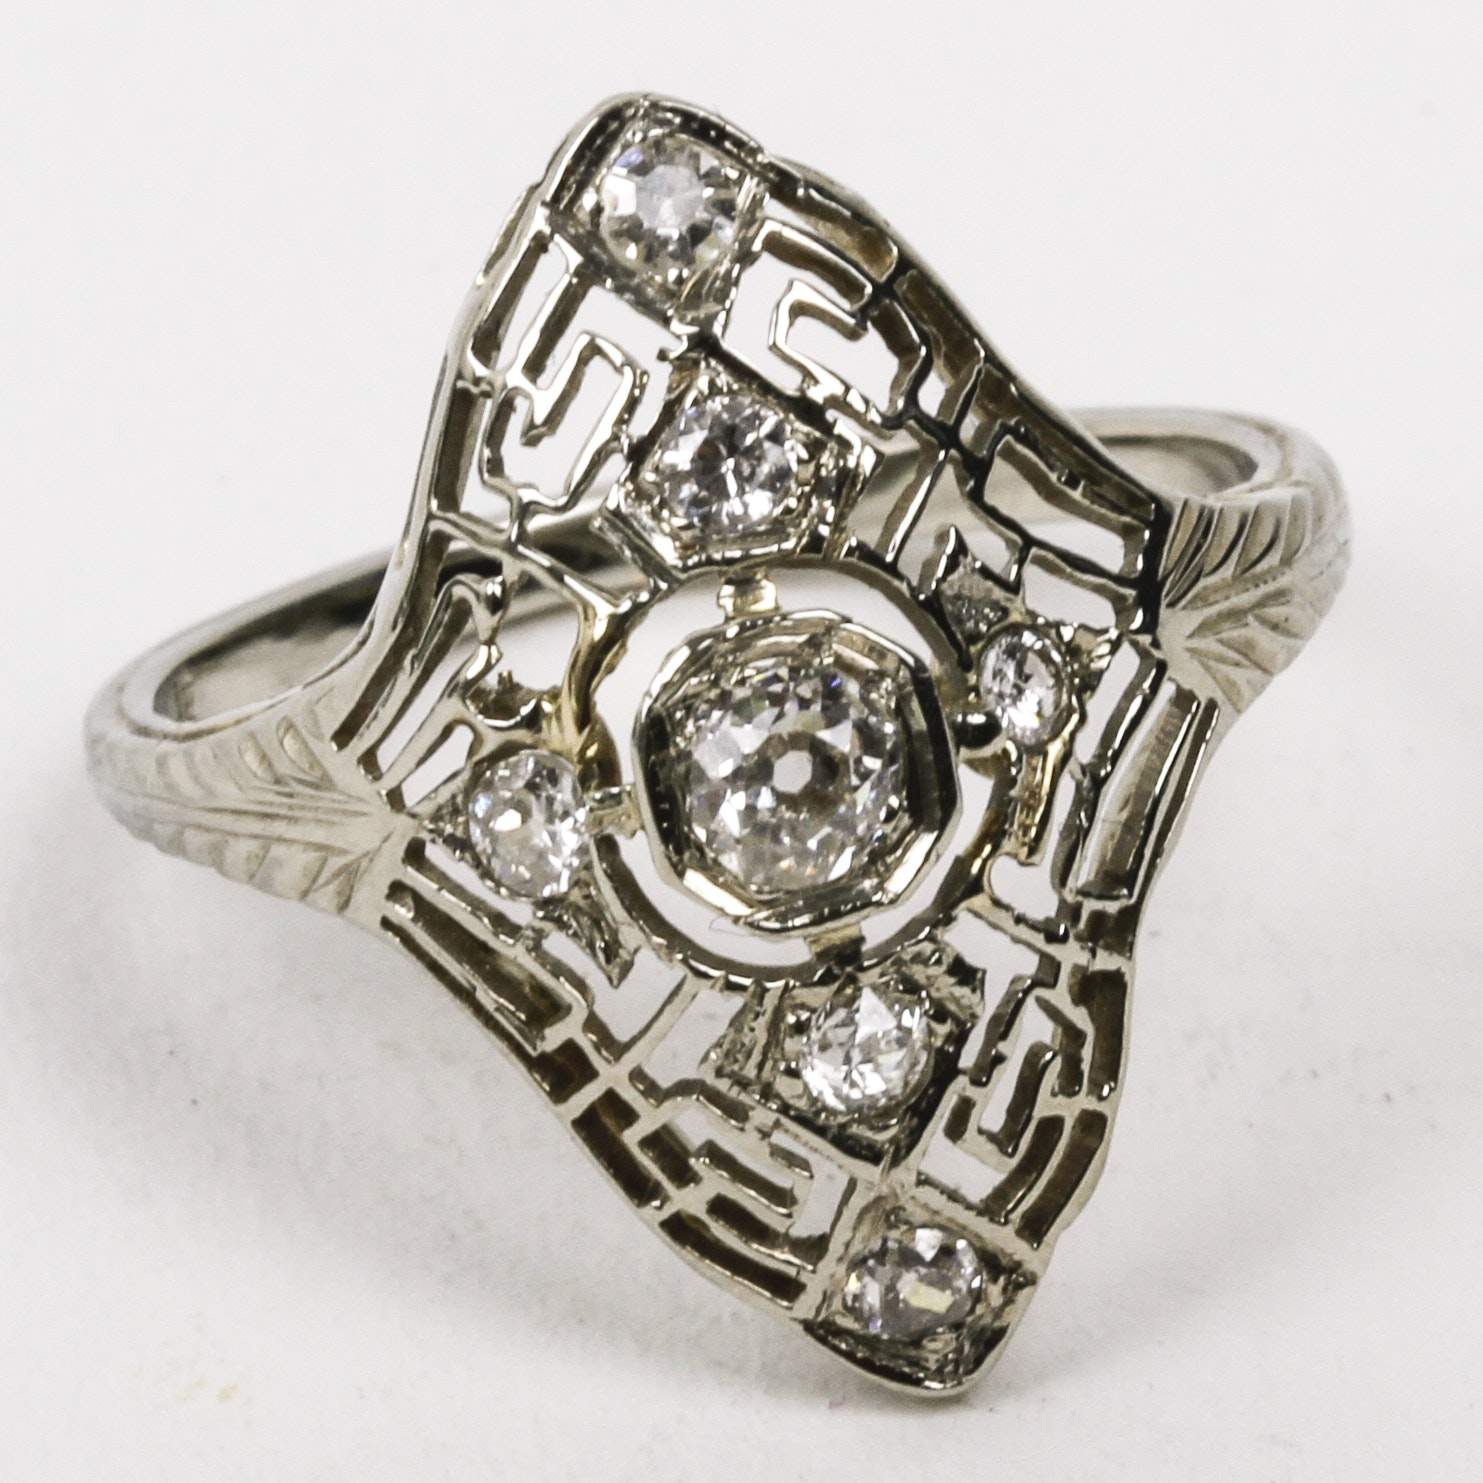 Late Edwardian 18K White Gold and Diamond Navette Ring